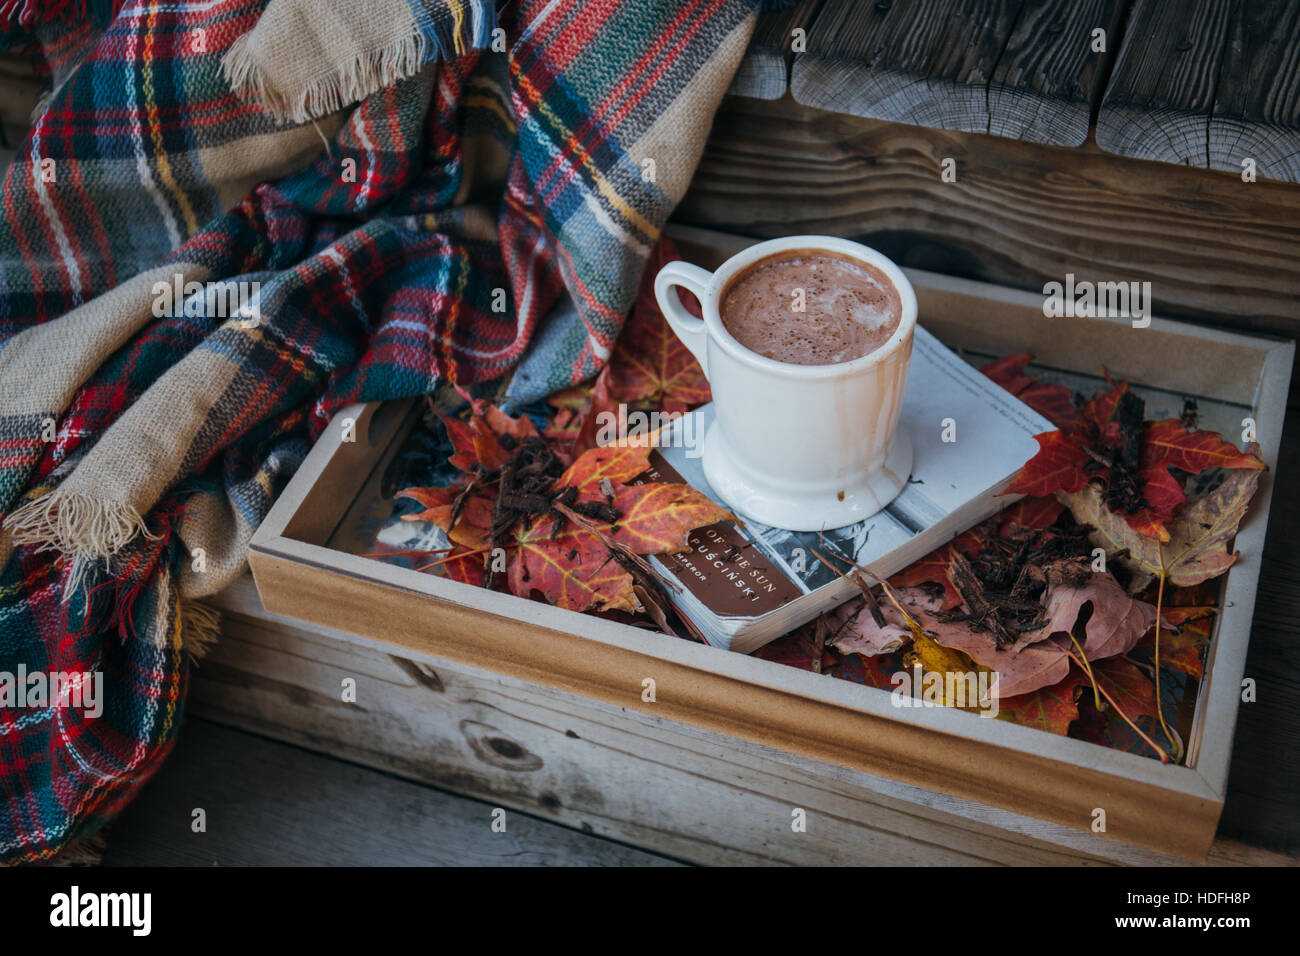 Winter scene with hot chocolate - Stock Image